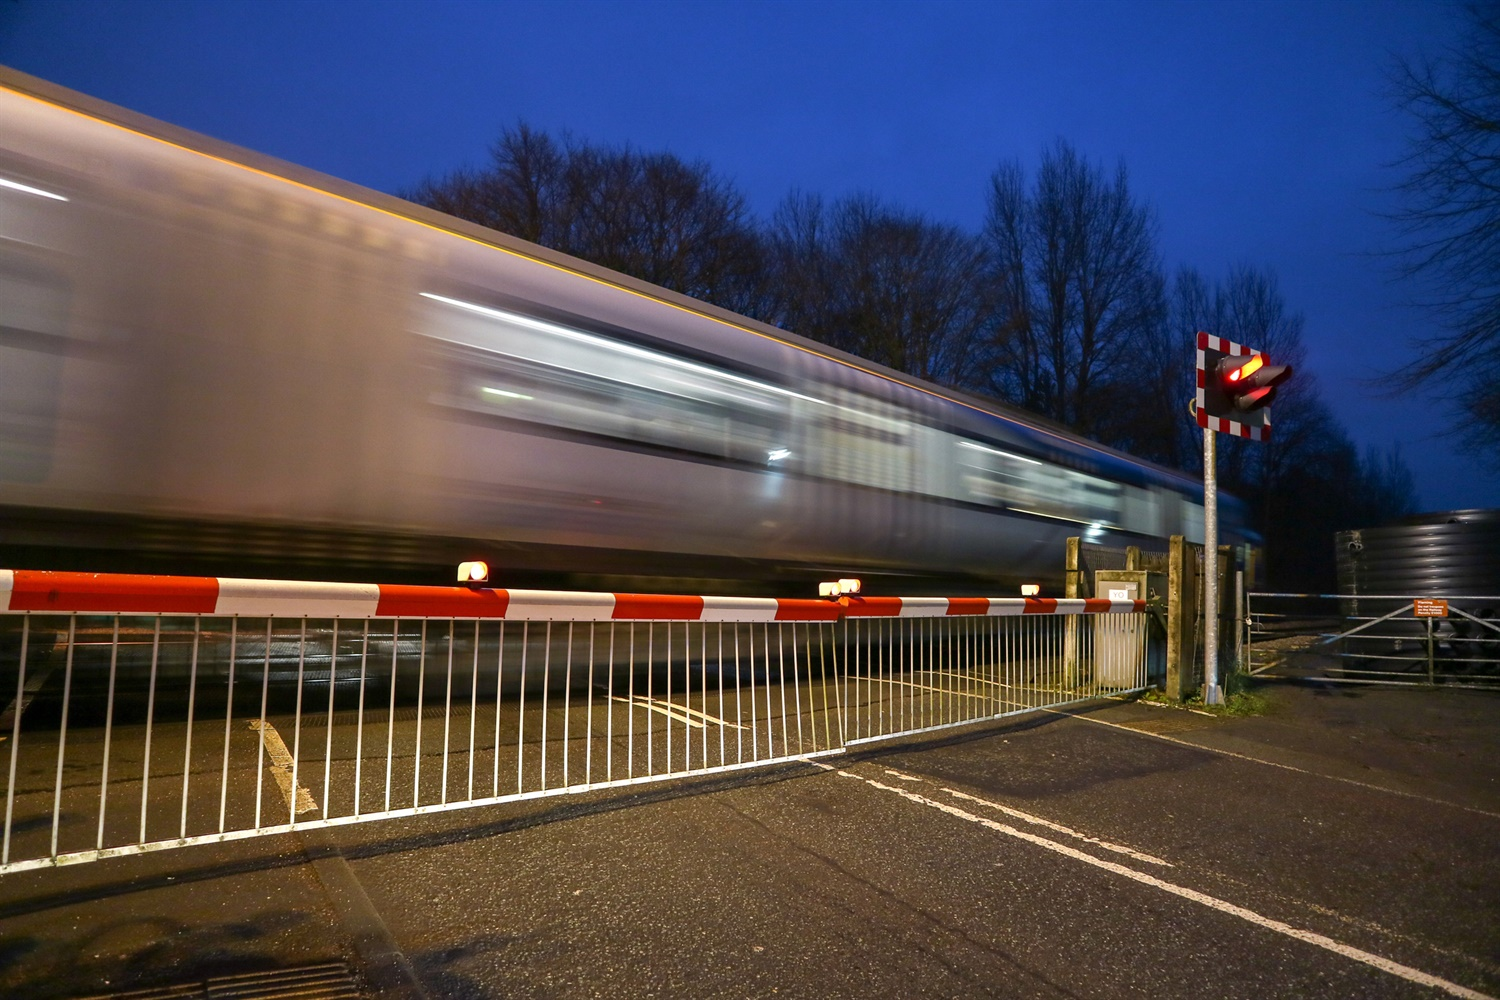 More reliable railway through multi-million-pound signalling investments